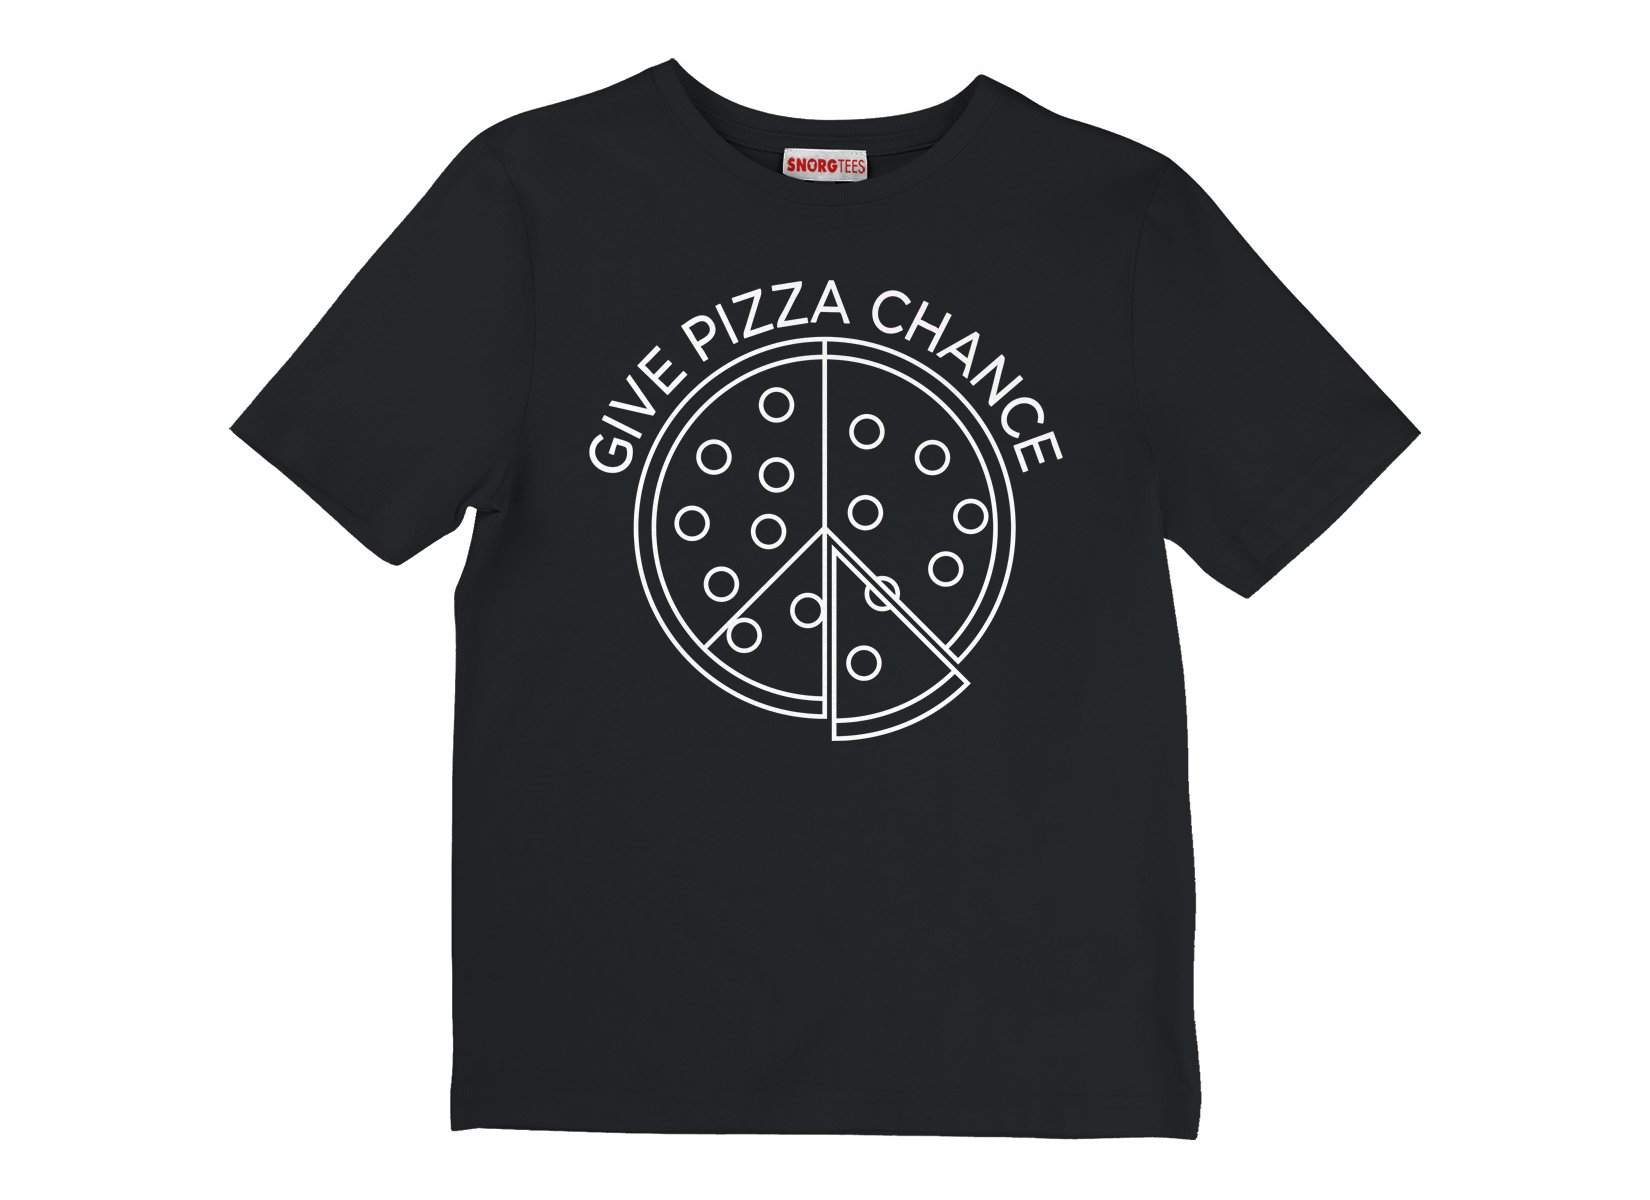 Give Pizza A Chance on Kids T-Shirt